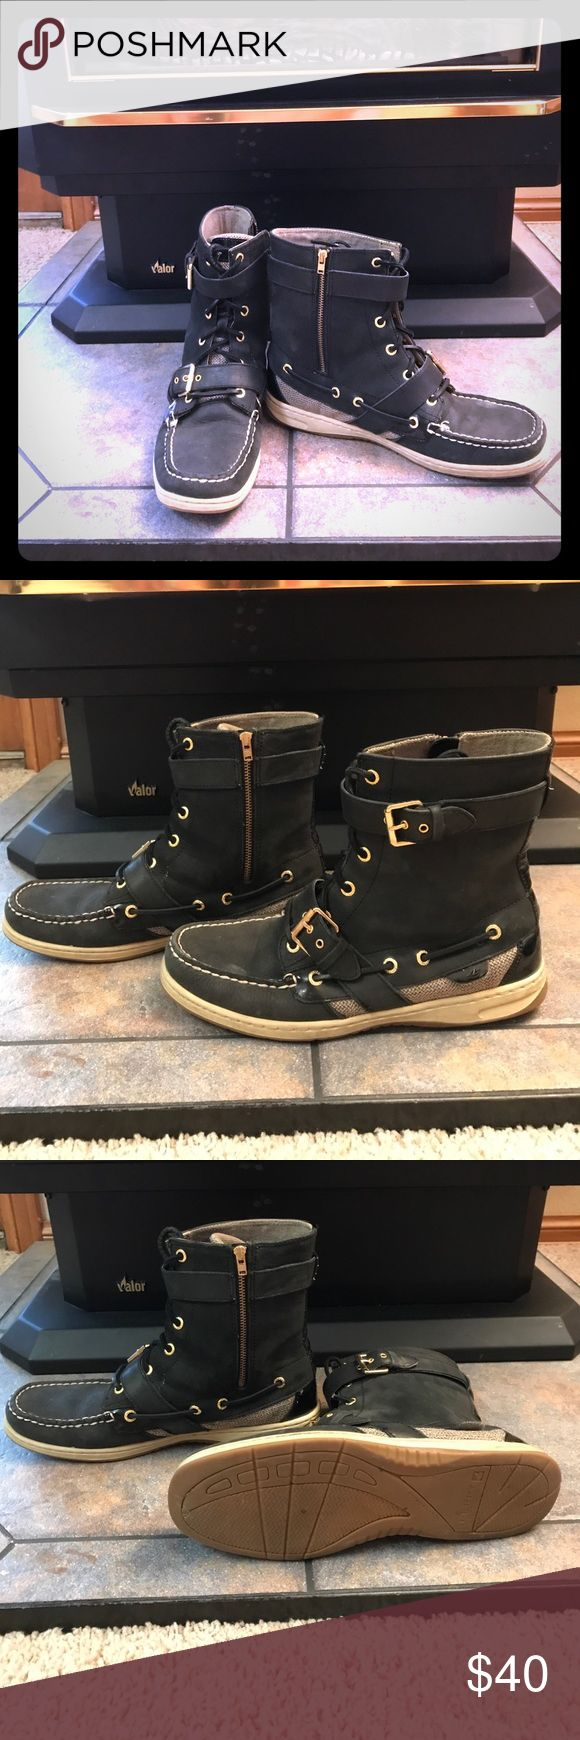 Women's Sperry hi top Great pair of shoes! I simply cannot wear this style anymore. Free shipping on Ⓜ️ Sperry Top-Sider Shoes